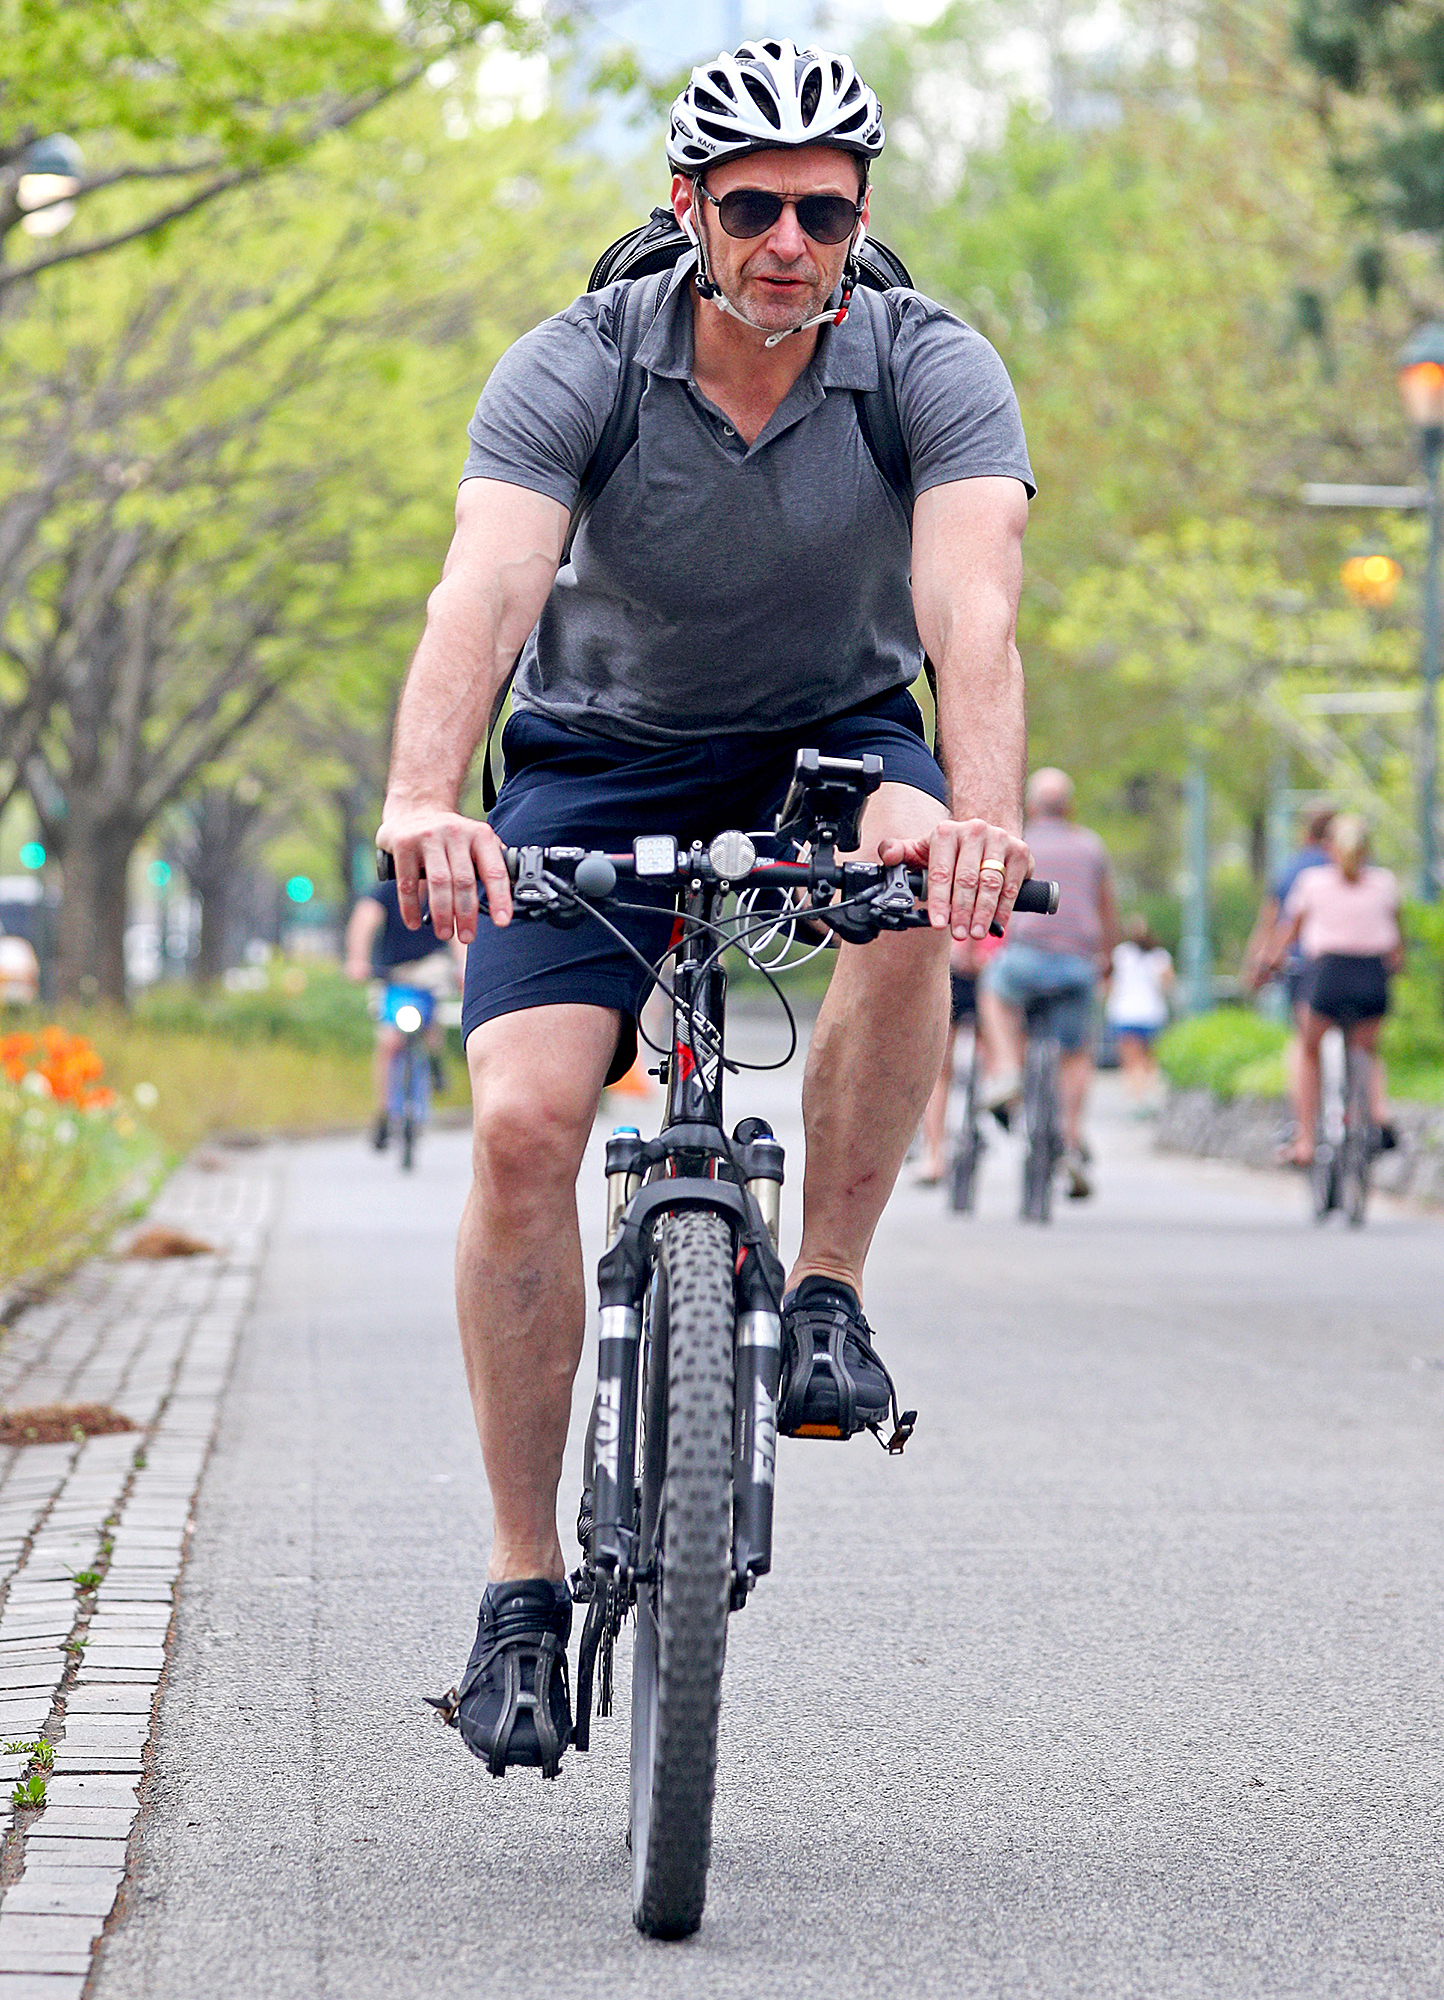 hugh-jackman-biking - With his head wisely protected by a helmet, Wolverine weaved through pedestrians in NYC on May 4, 2018.